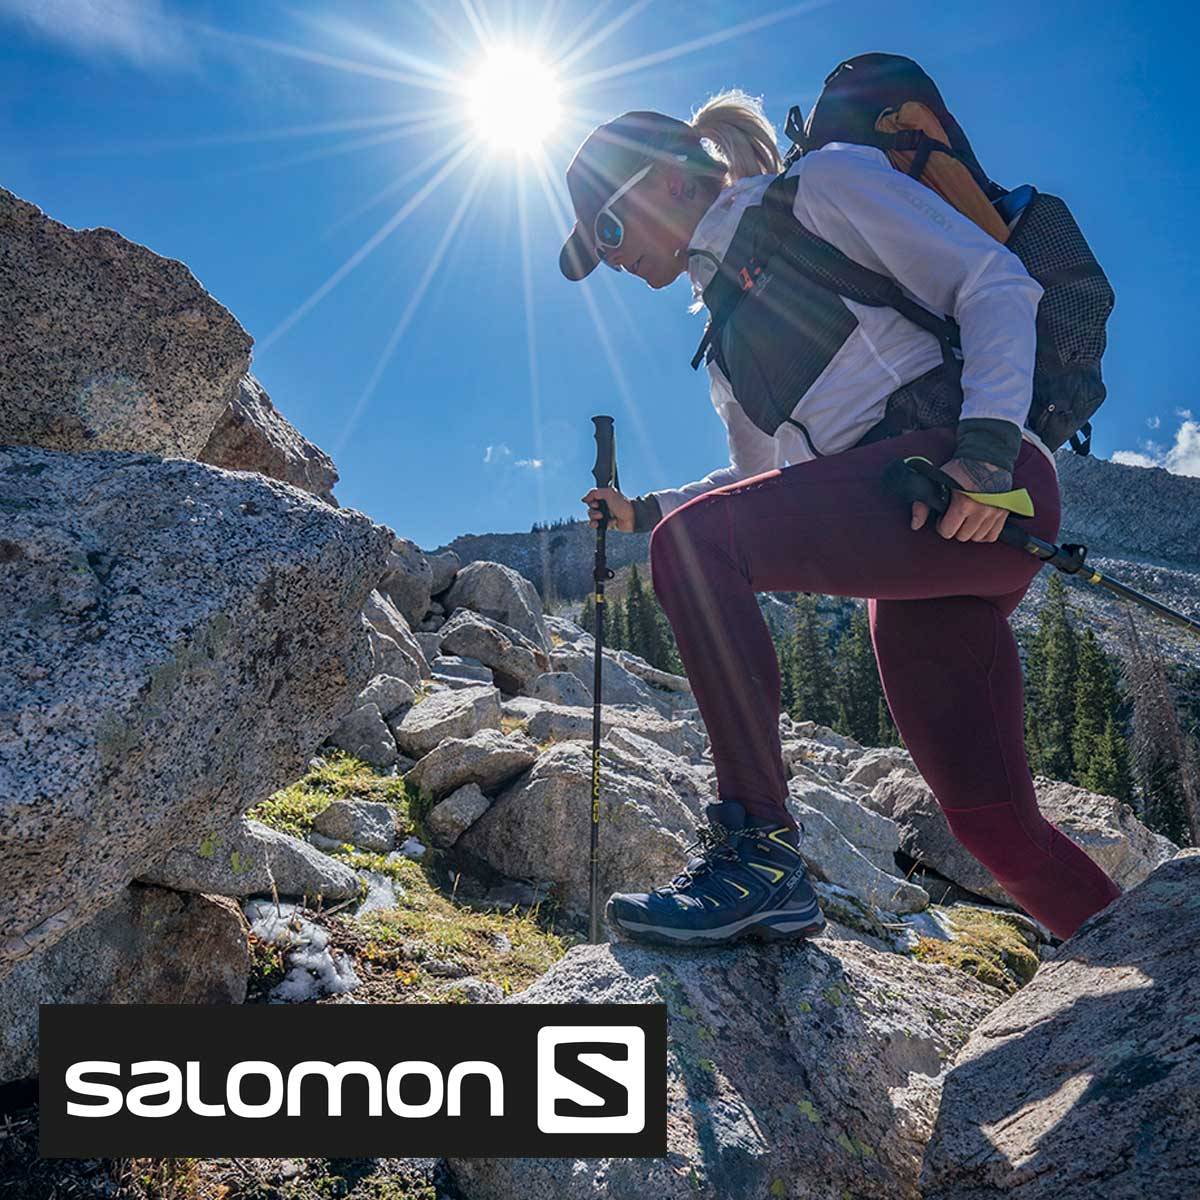 Nashville Salomon Dealer